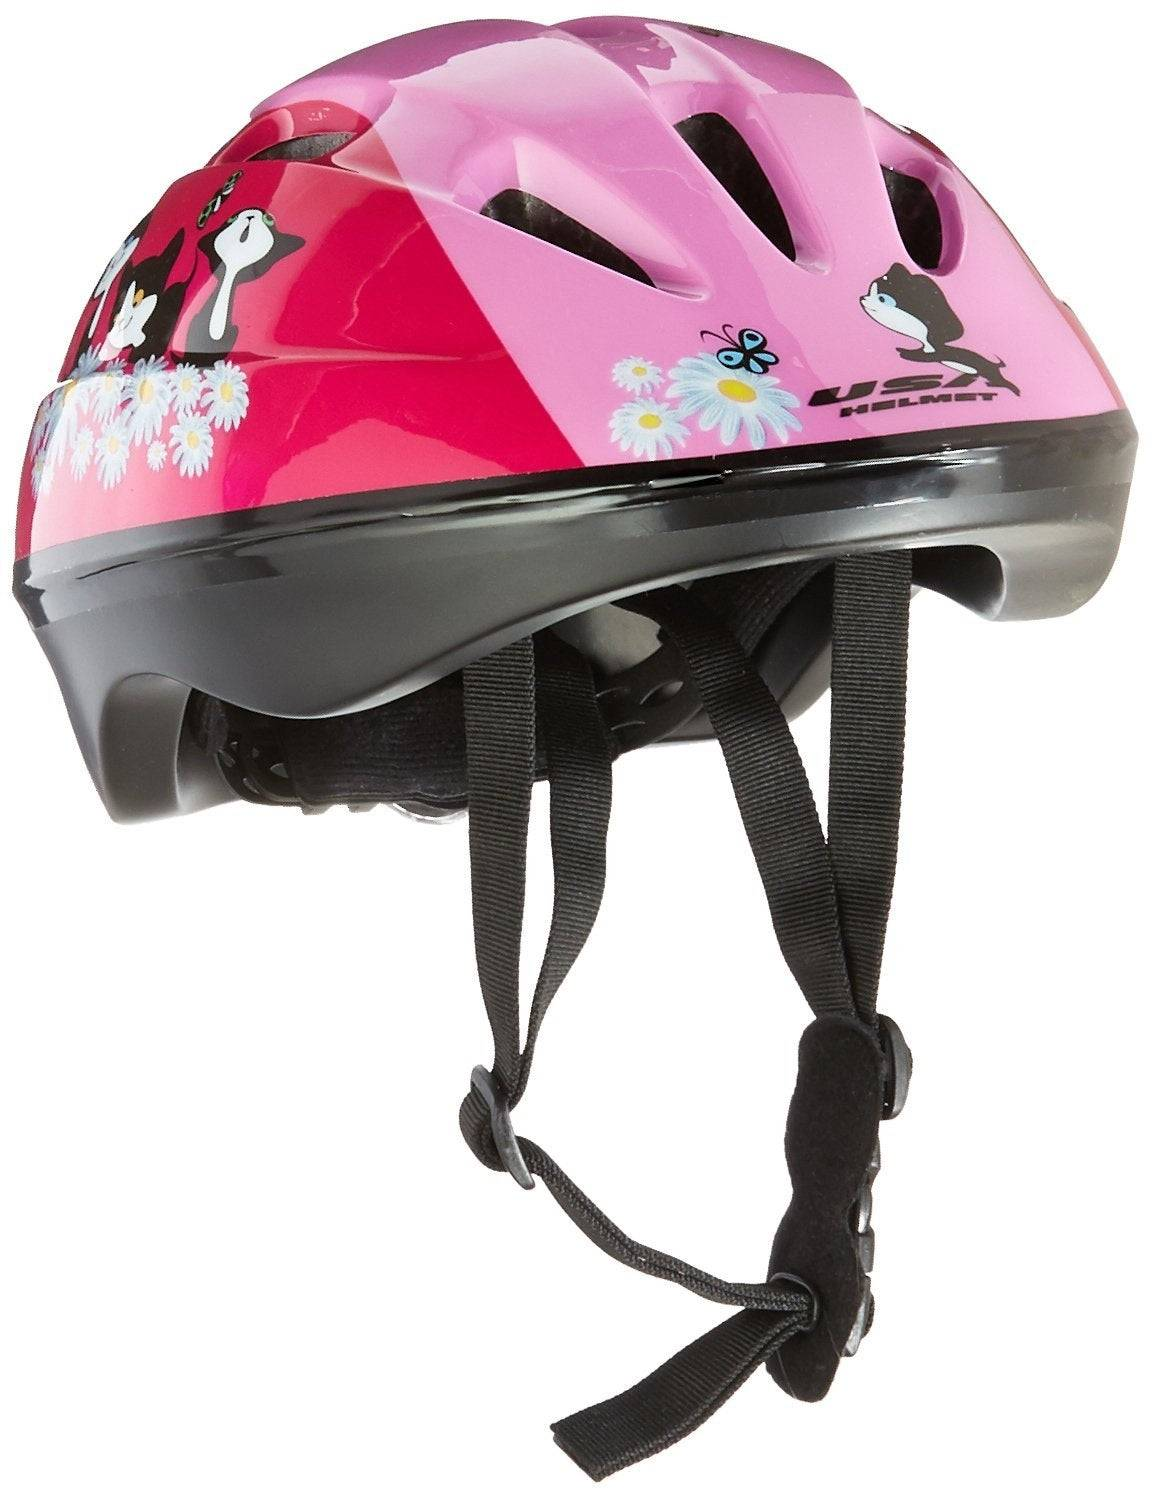 Kent 97521 Toddler Bicycle Helmet, Pink With Kittens